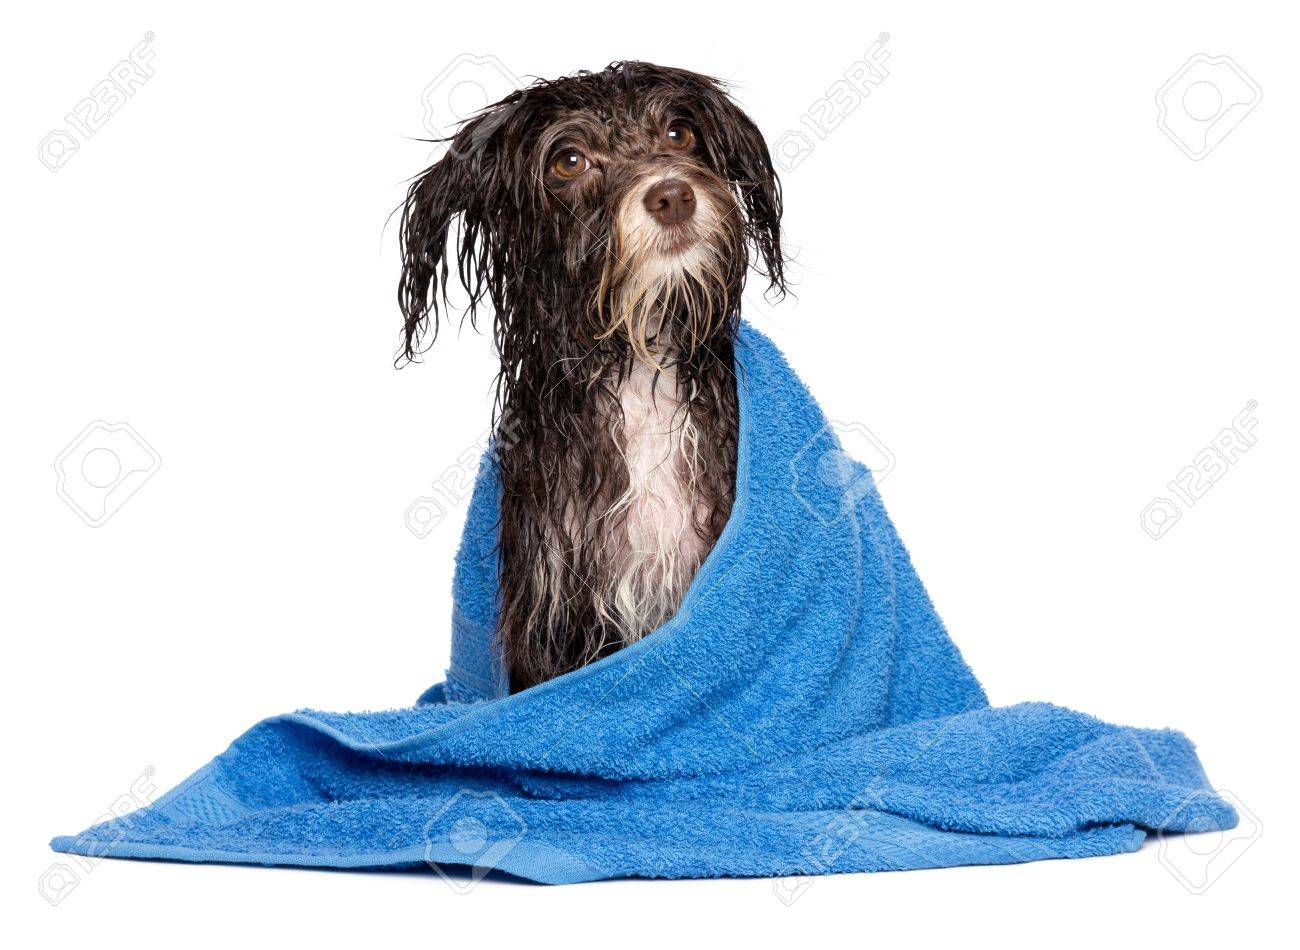 Wet dark chocolate havanese dog after the bath with a blue towel isolated on white background Stock Photo - 18828014